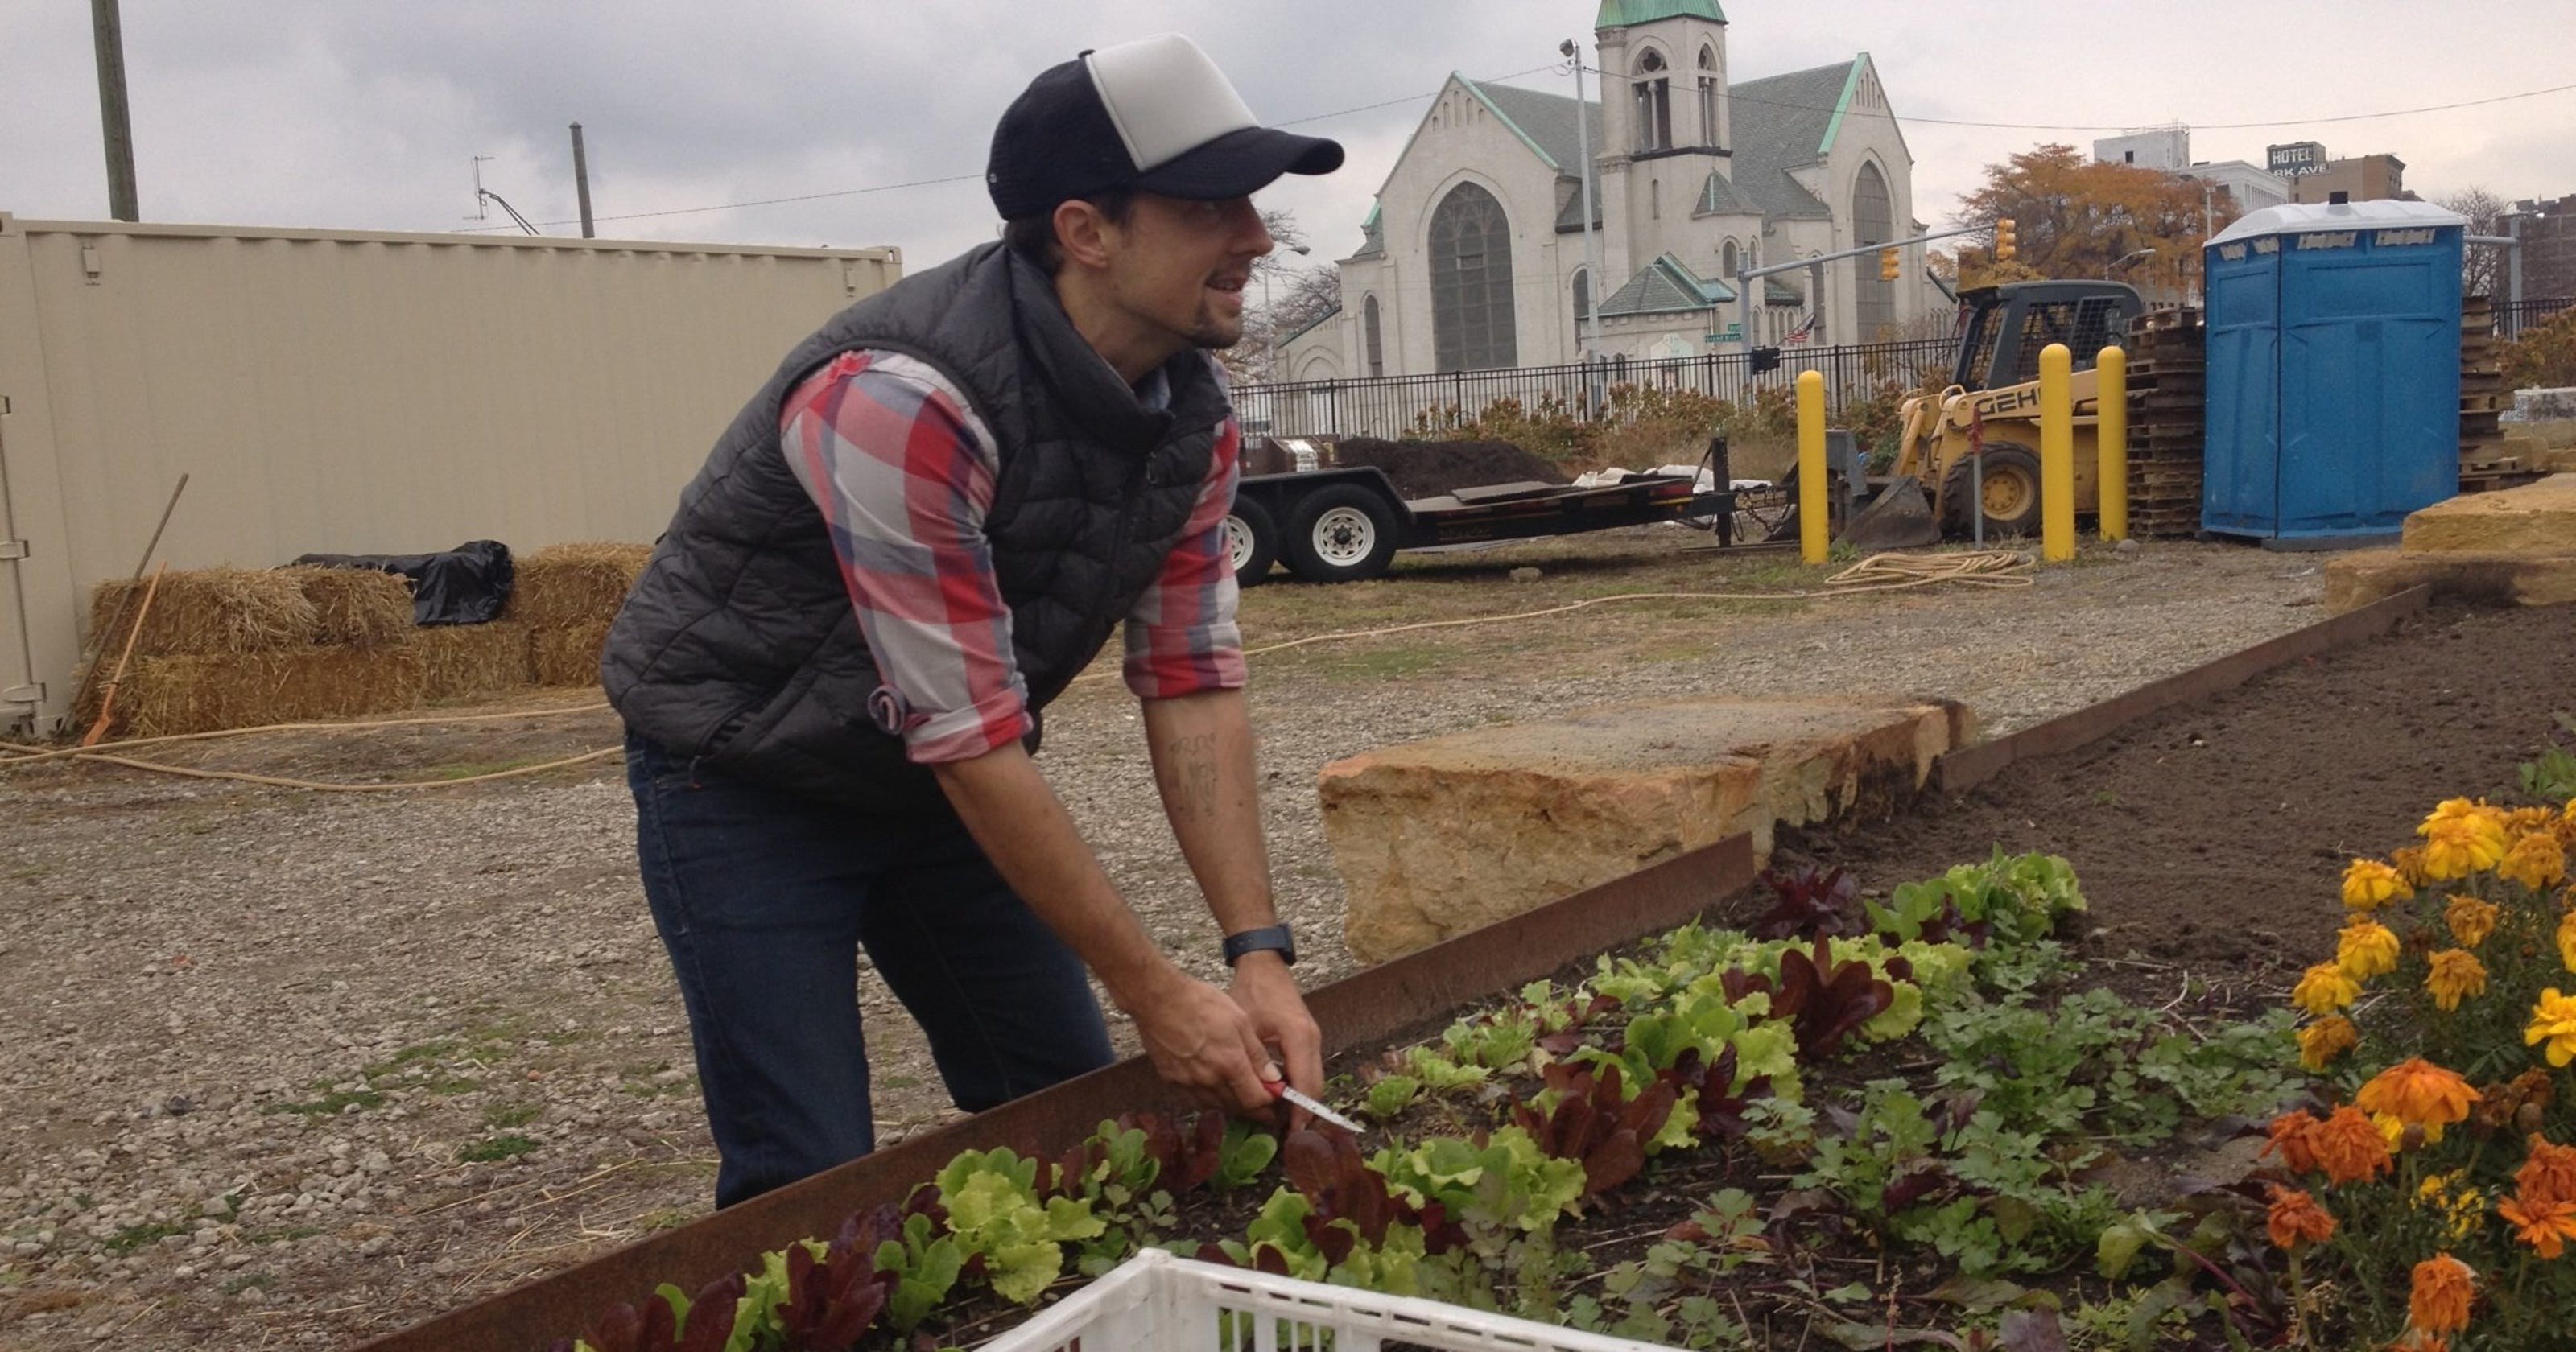 Jason Mraz does some urban farming in Detroit